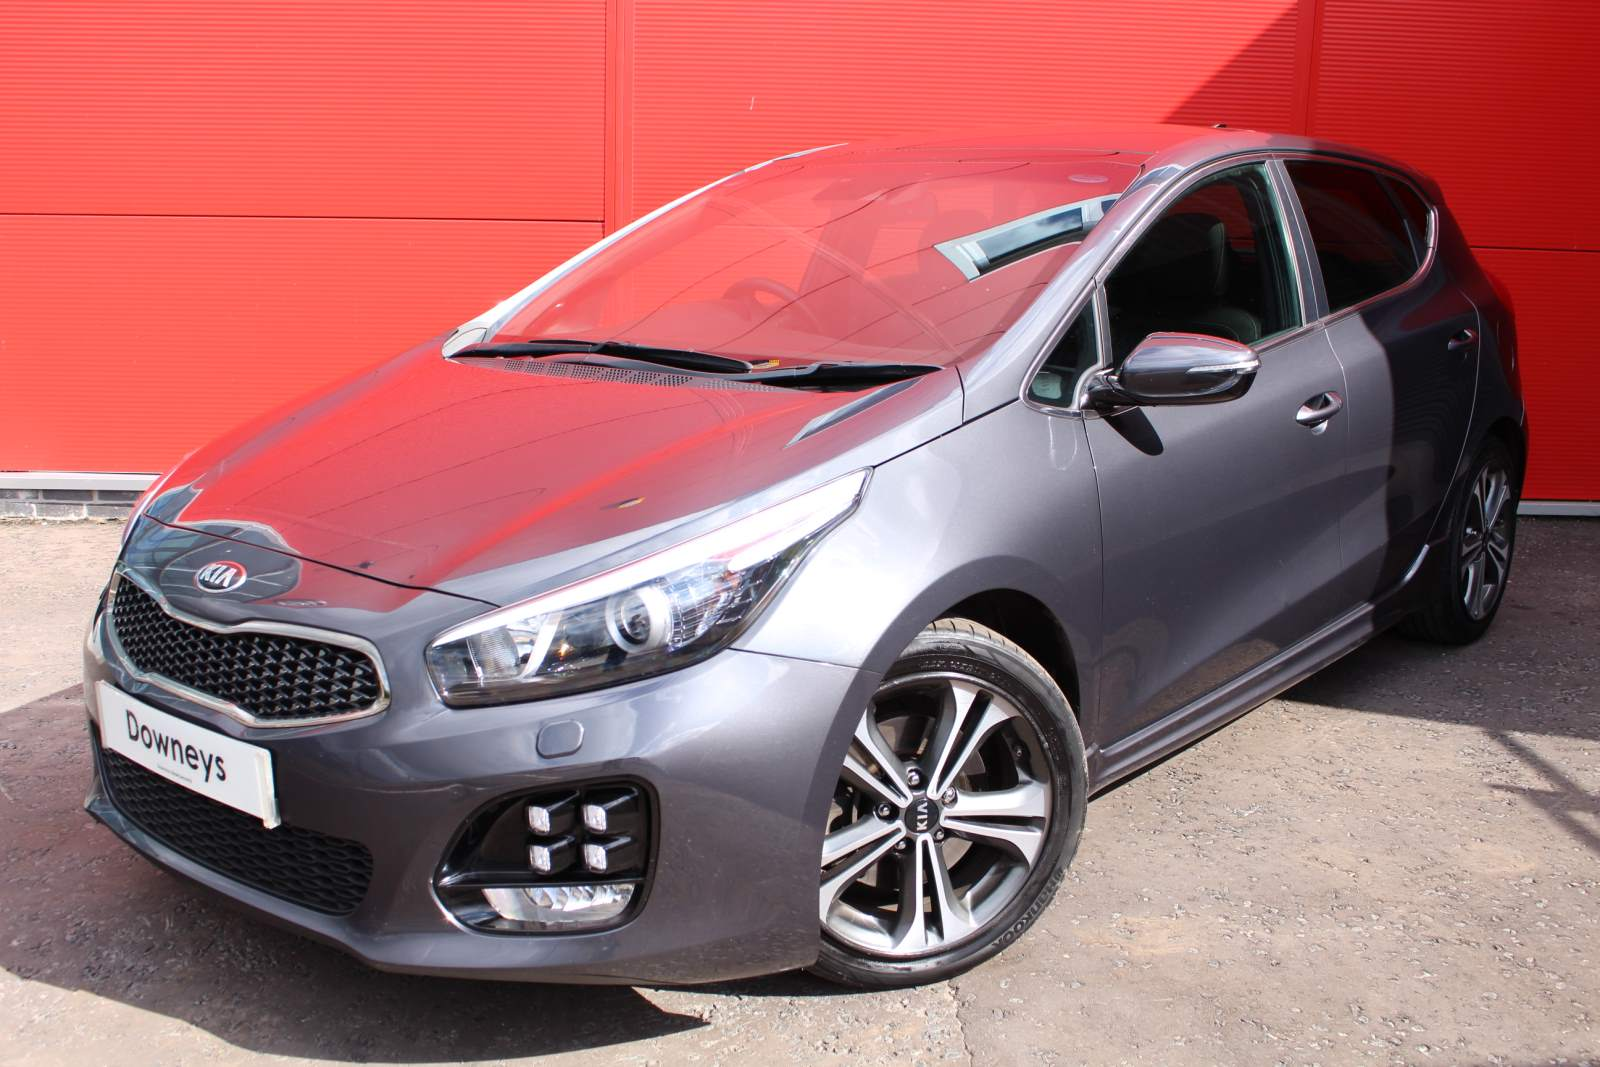 Kia CEED GT-LINE S ISG 1.6 CRDI FULL KIA WARRANTY UNTIL SEPT 2025